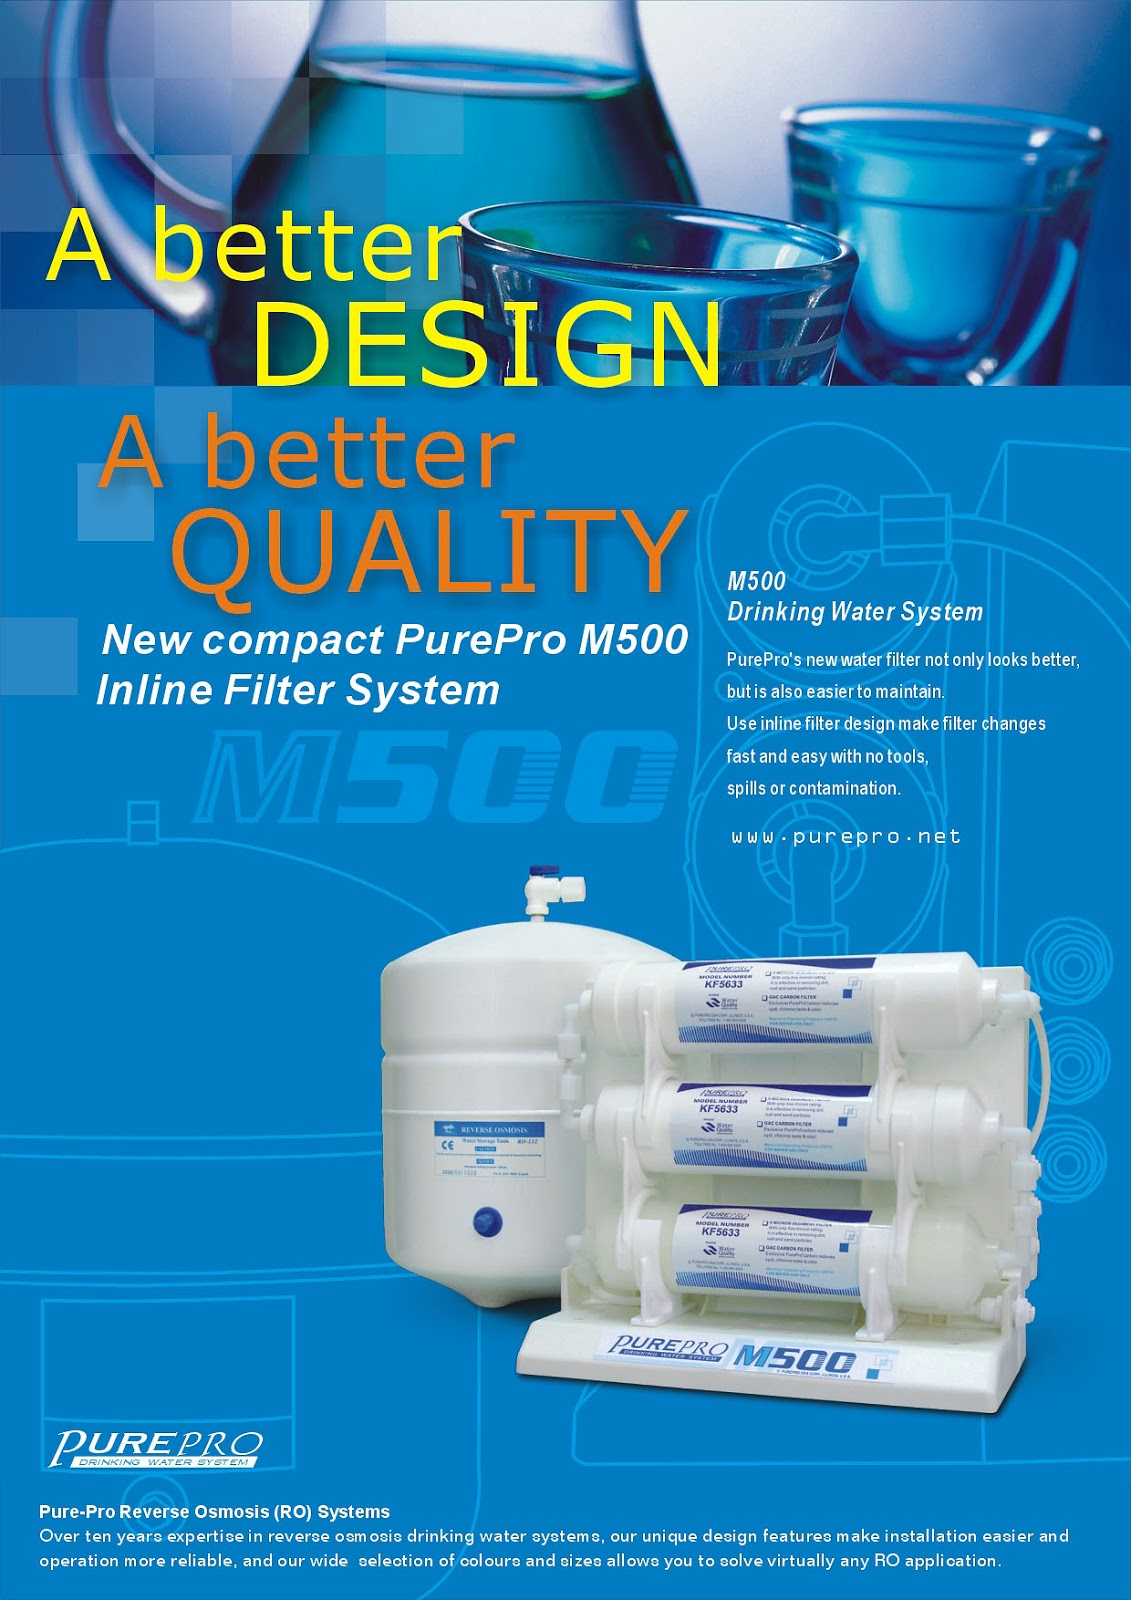 PurePro® M500 Reverse Osmosis Water Filtration System